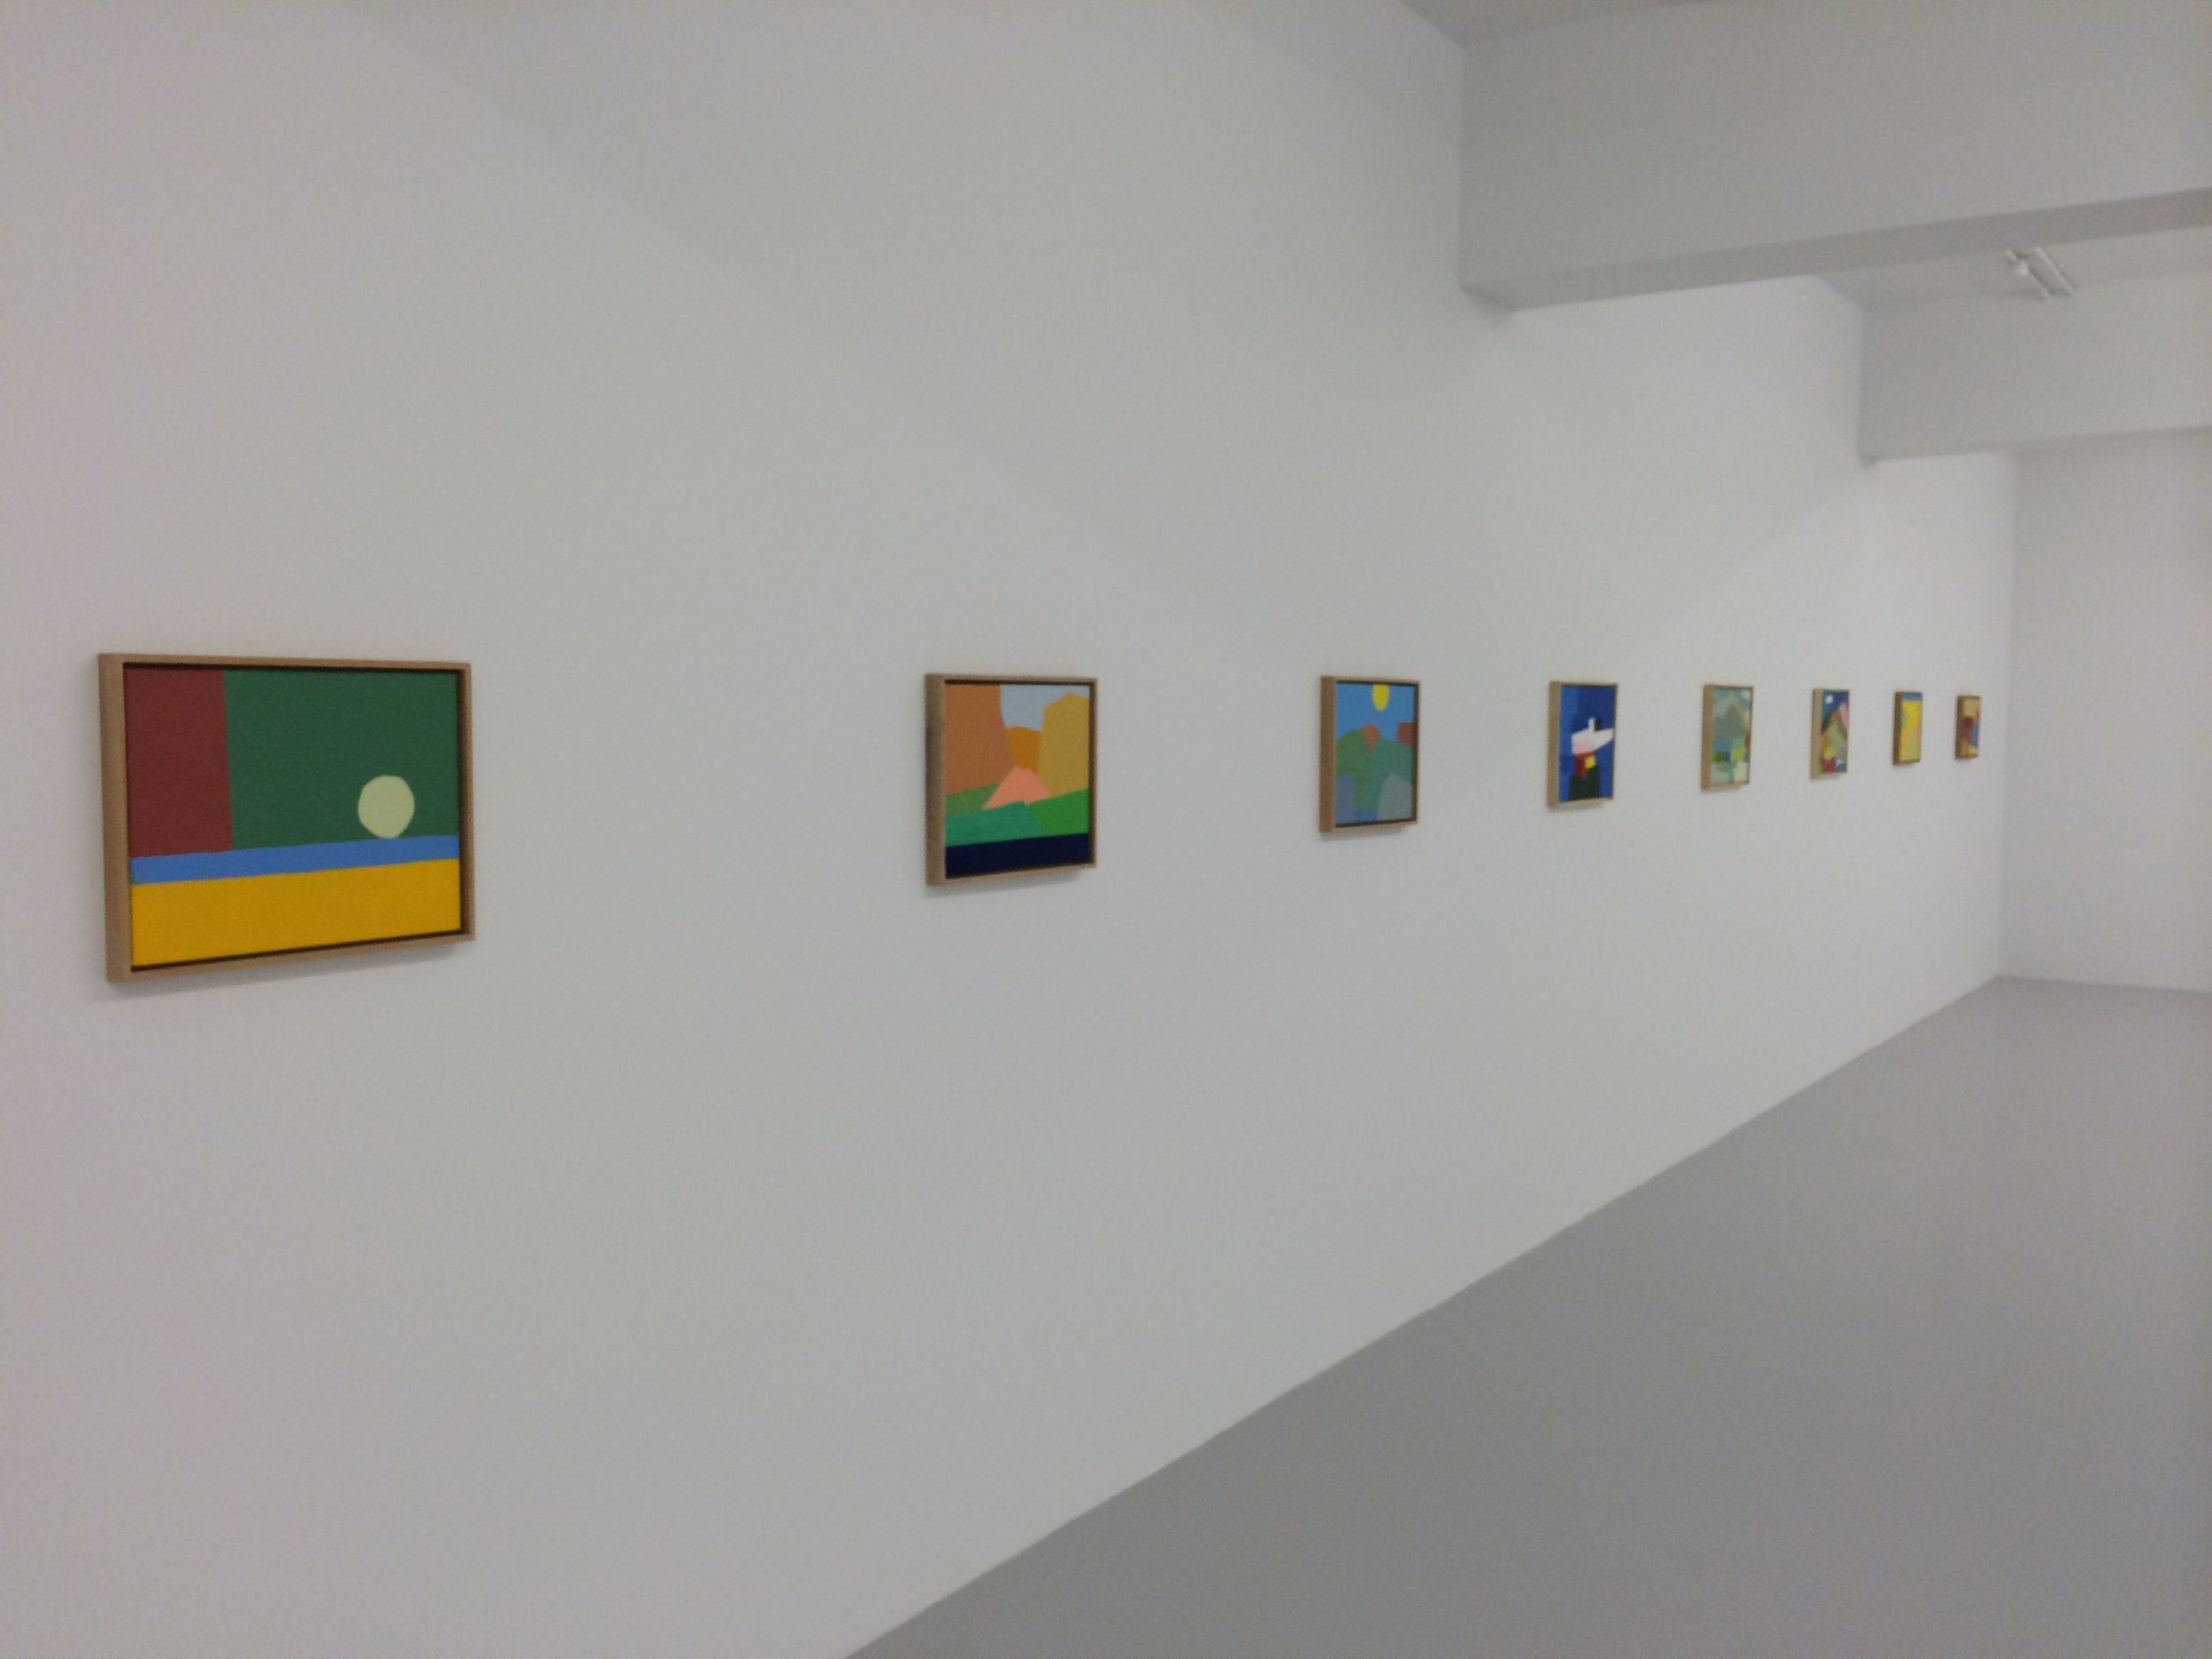 Some of Etel Adnan's paintings at Mathaf